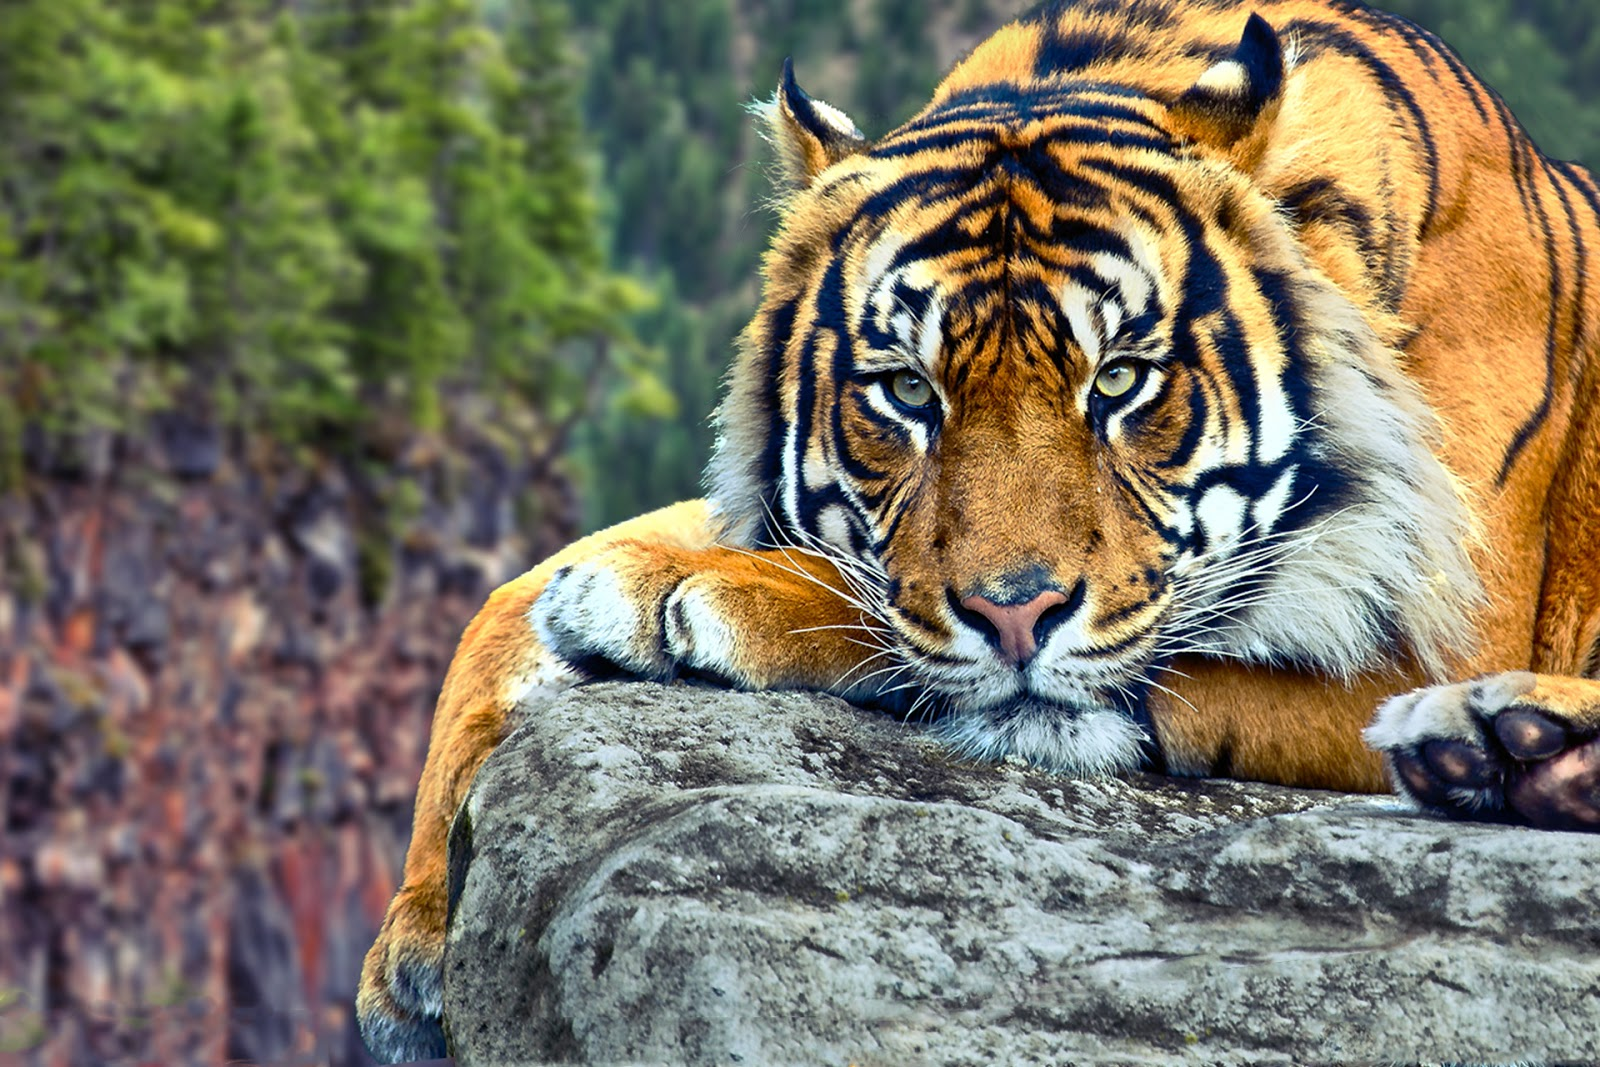 Best 32 Tiger Backgrounds for Computer on HipWallpaper Awesome 1600x1067